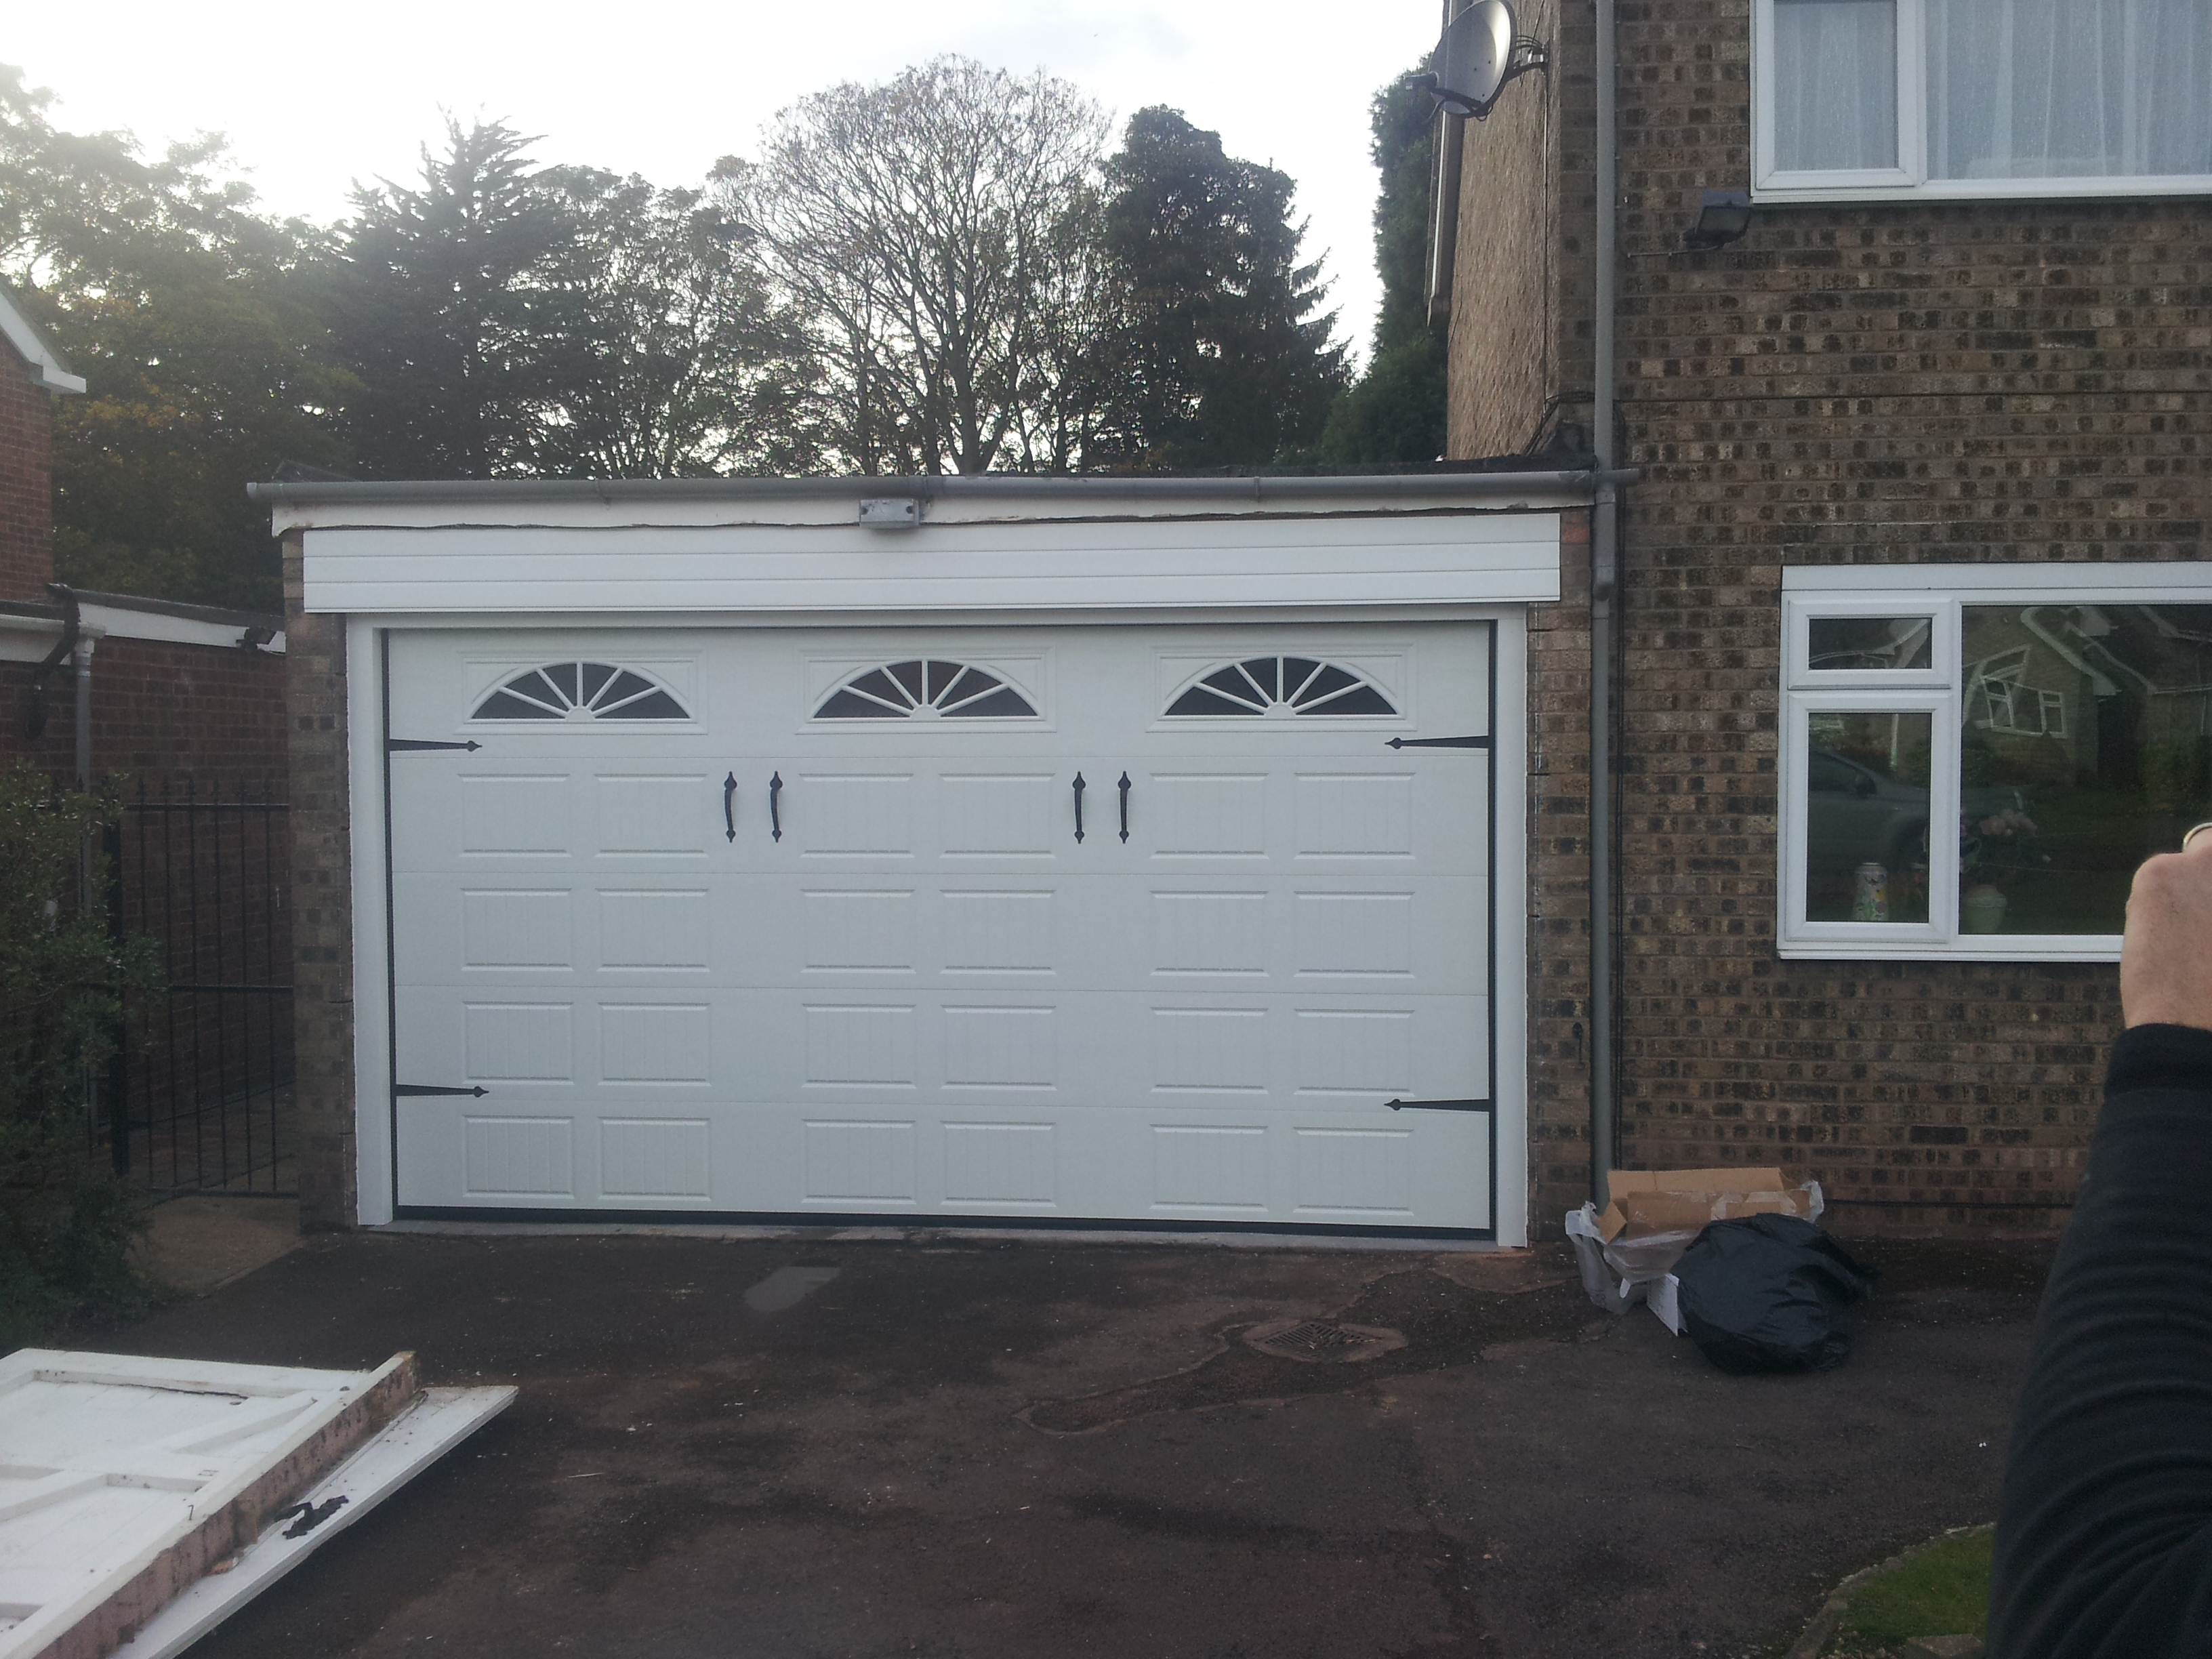 2448 #5A5049 Home New Garage Doors Carriage Style Garage Doors 2017 2018 Best  image New Garage Doors 36933264